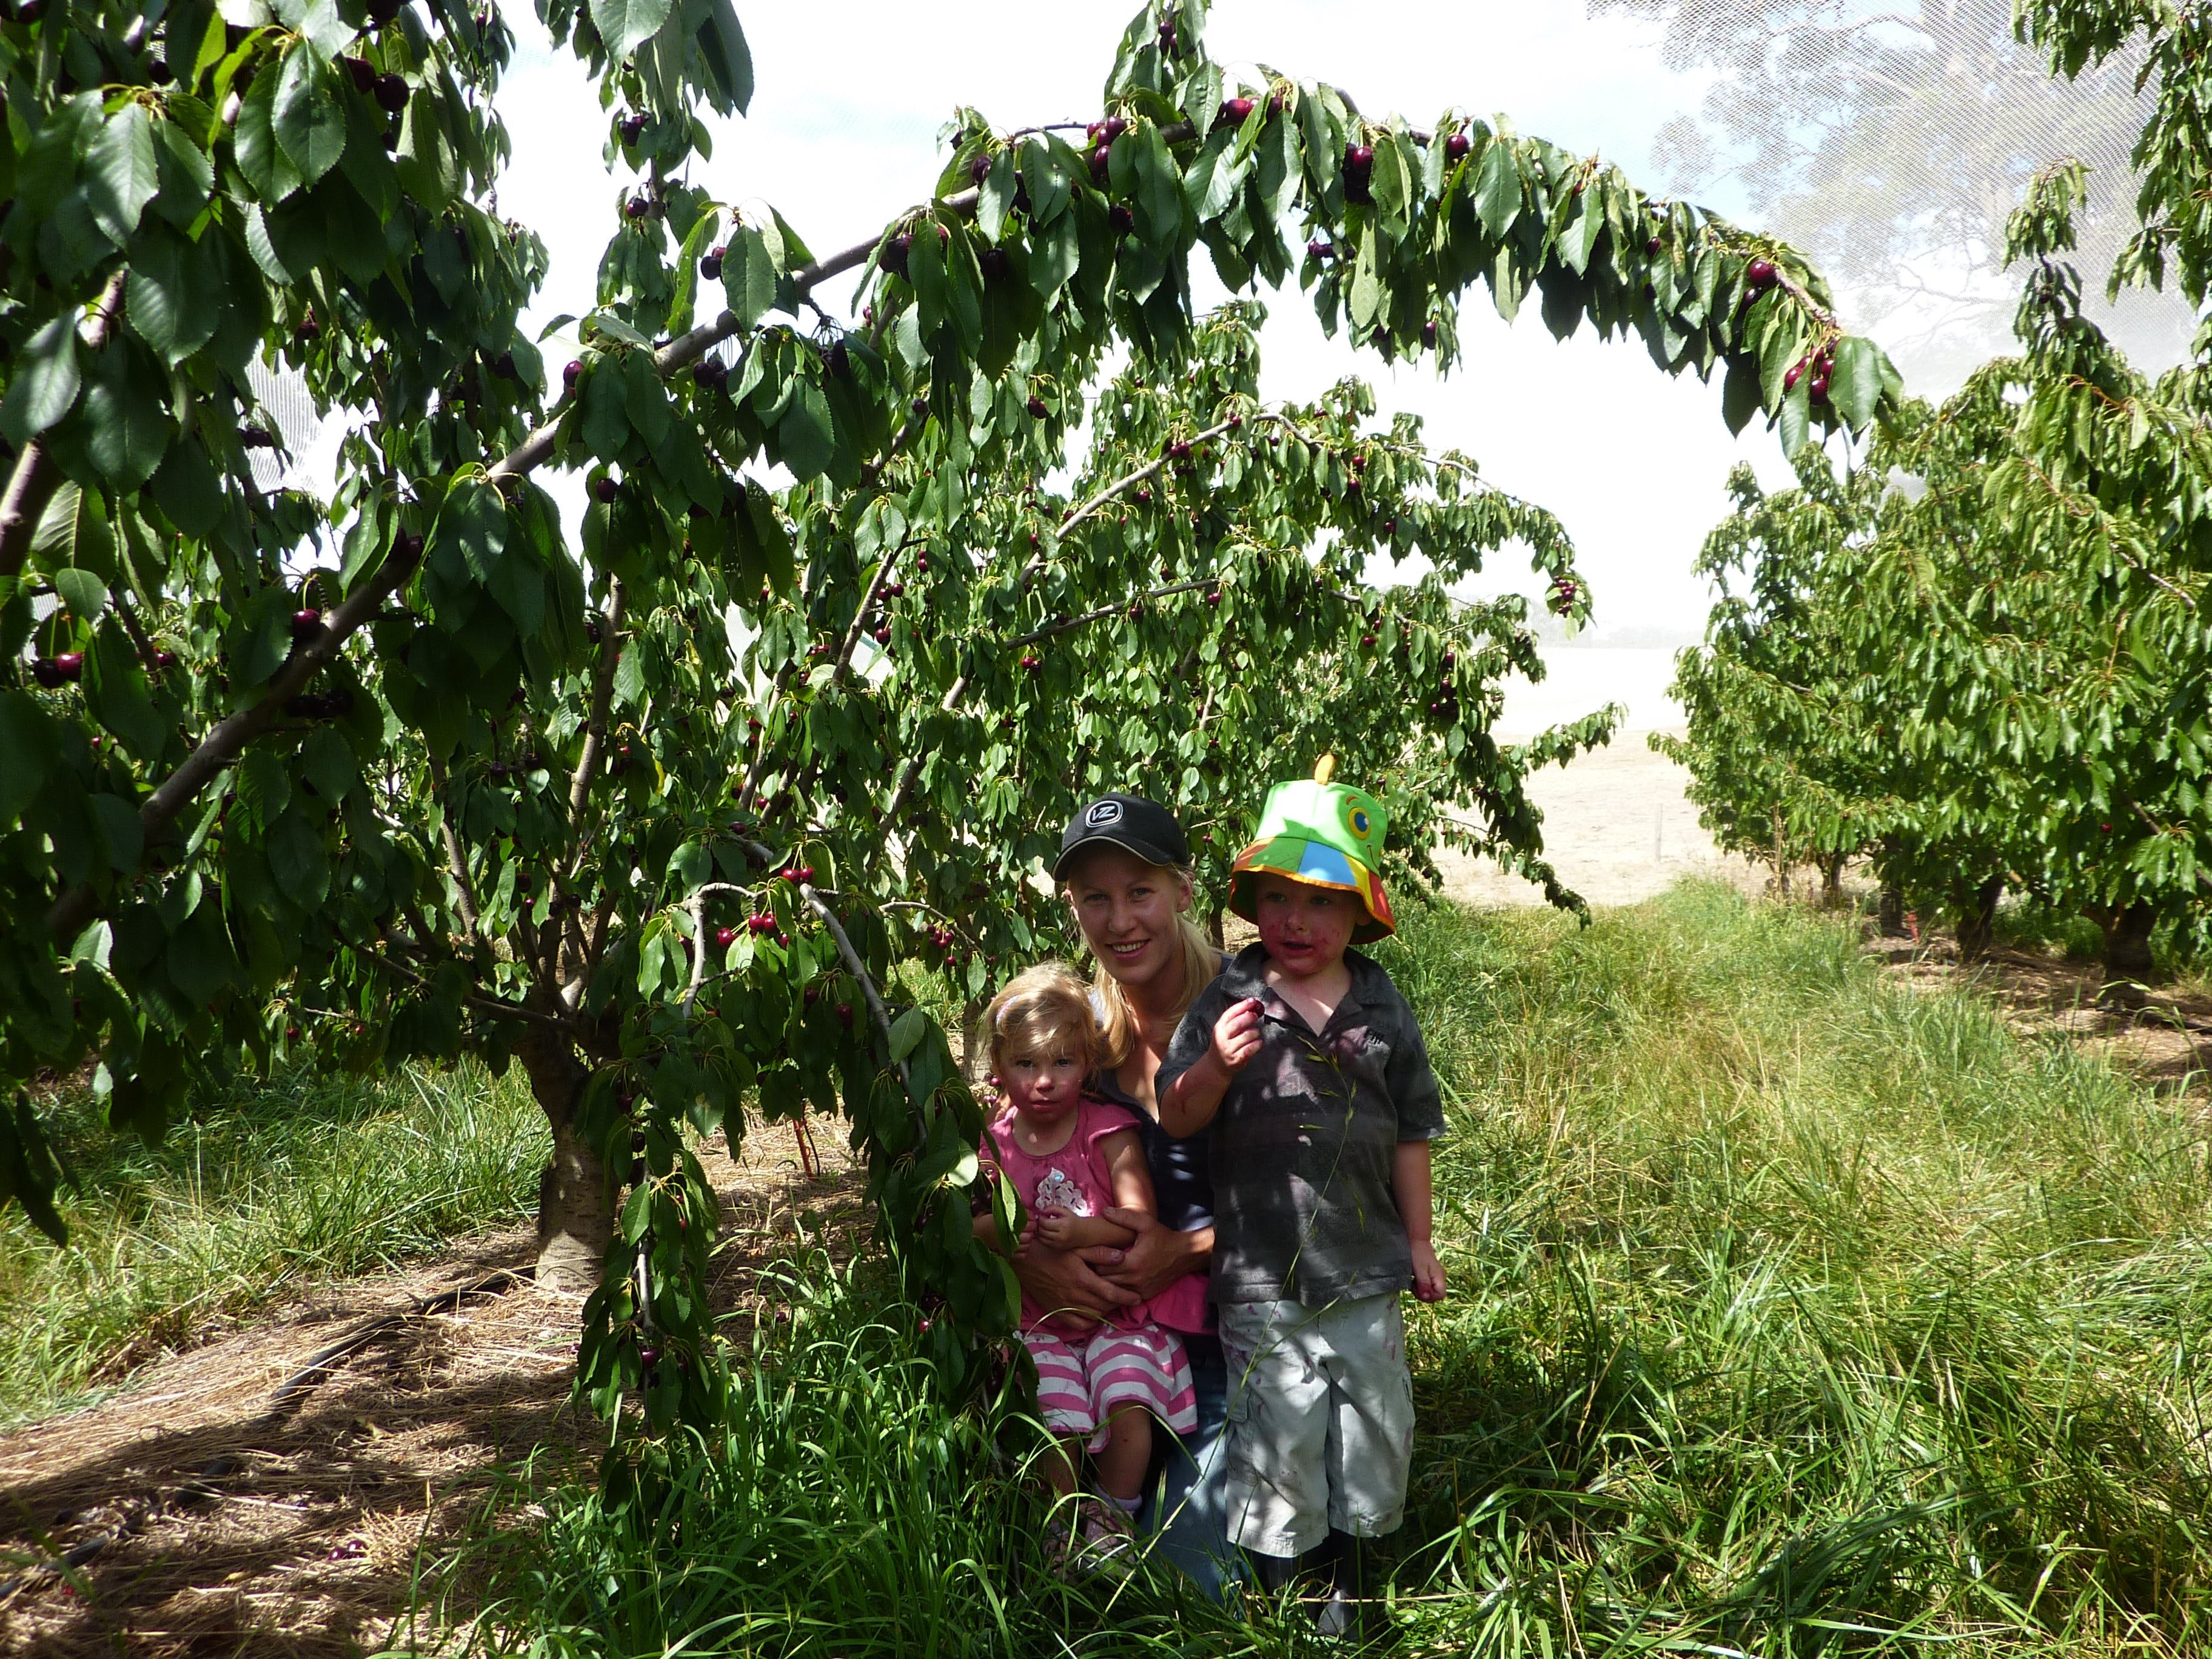 Harben Vale Pick Your Own Cherries - Broome Tourism